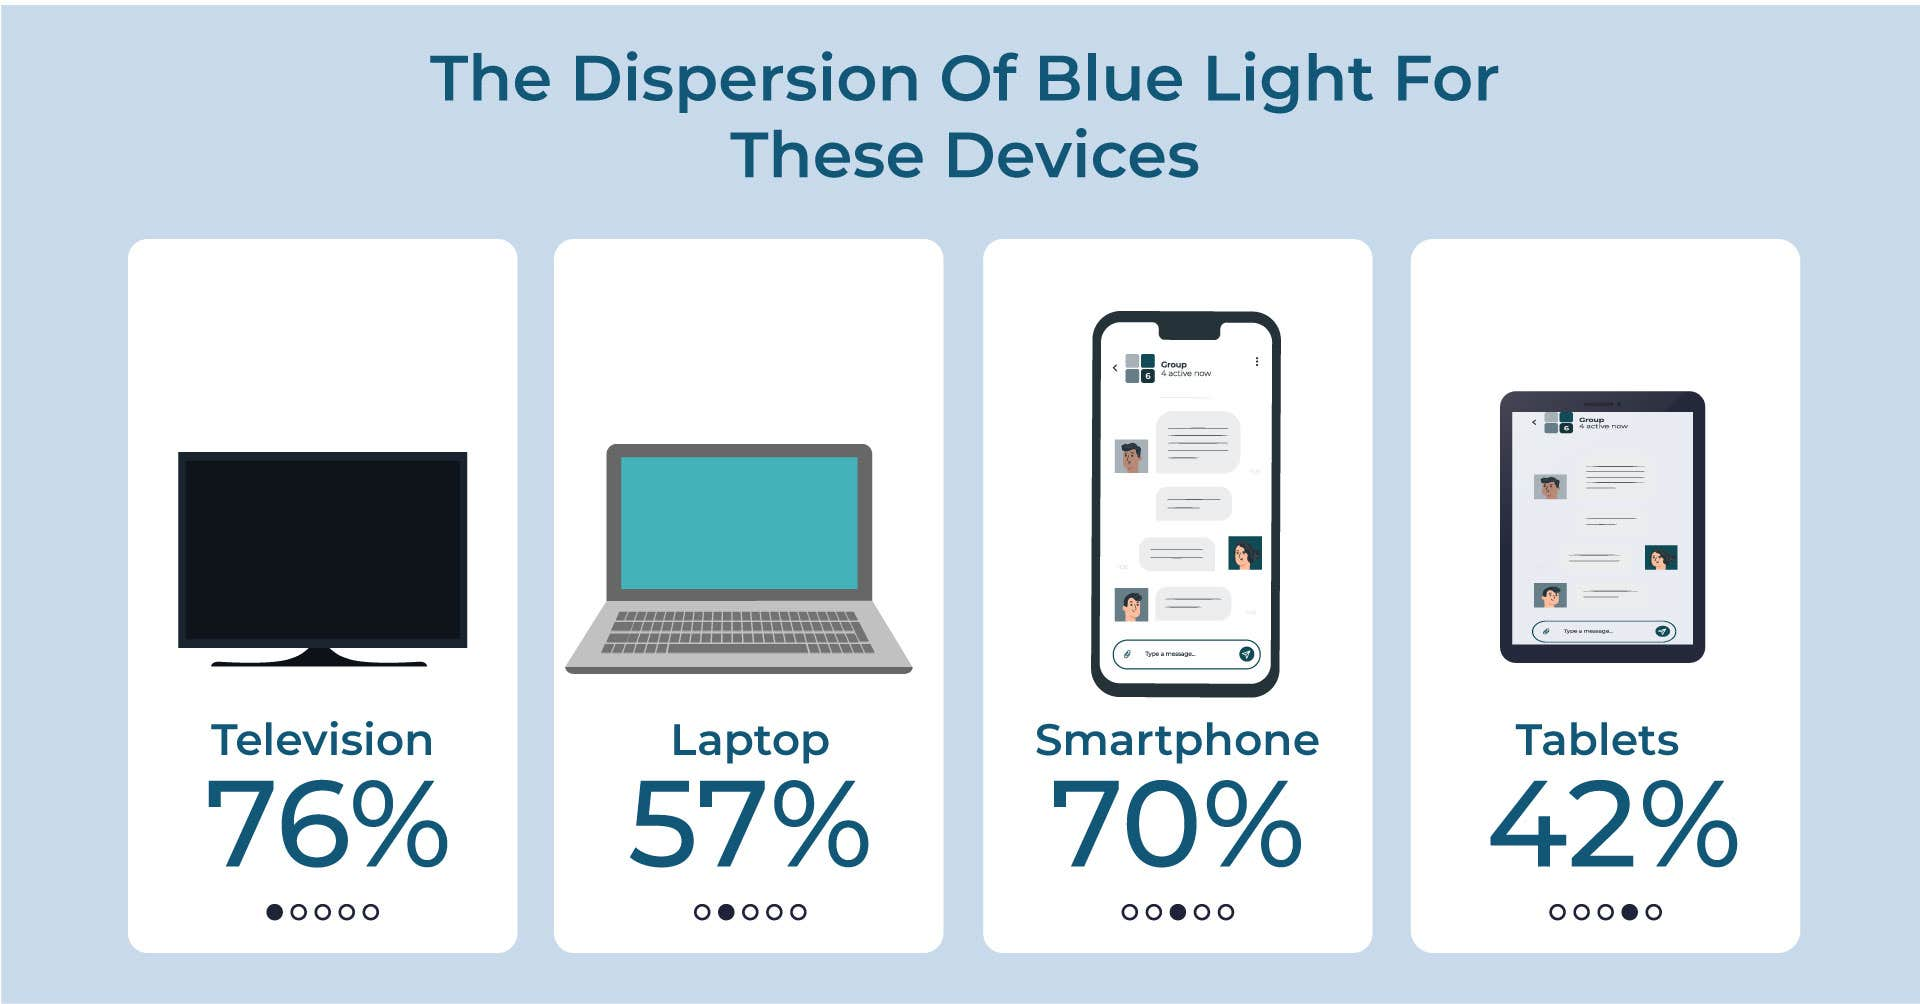 The Dispersion of Blue Light  For These Devices